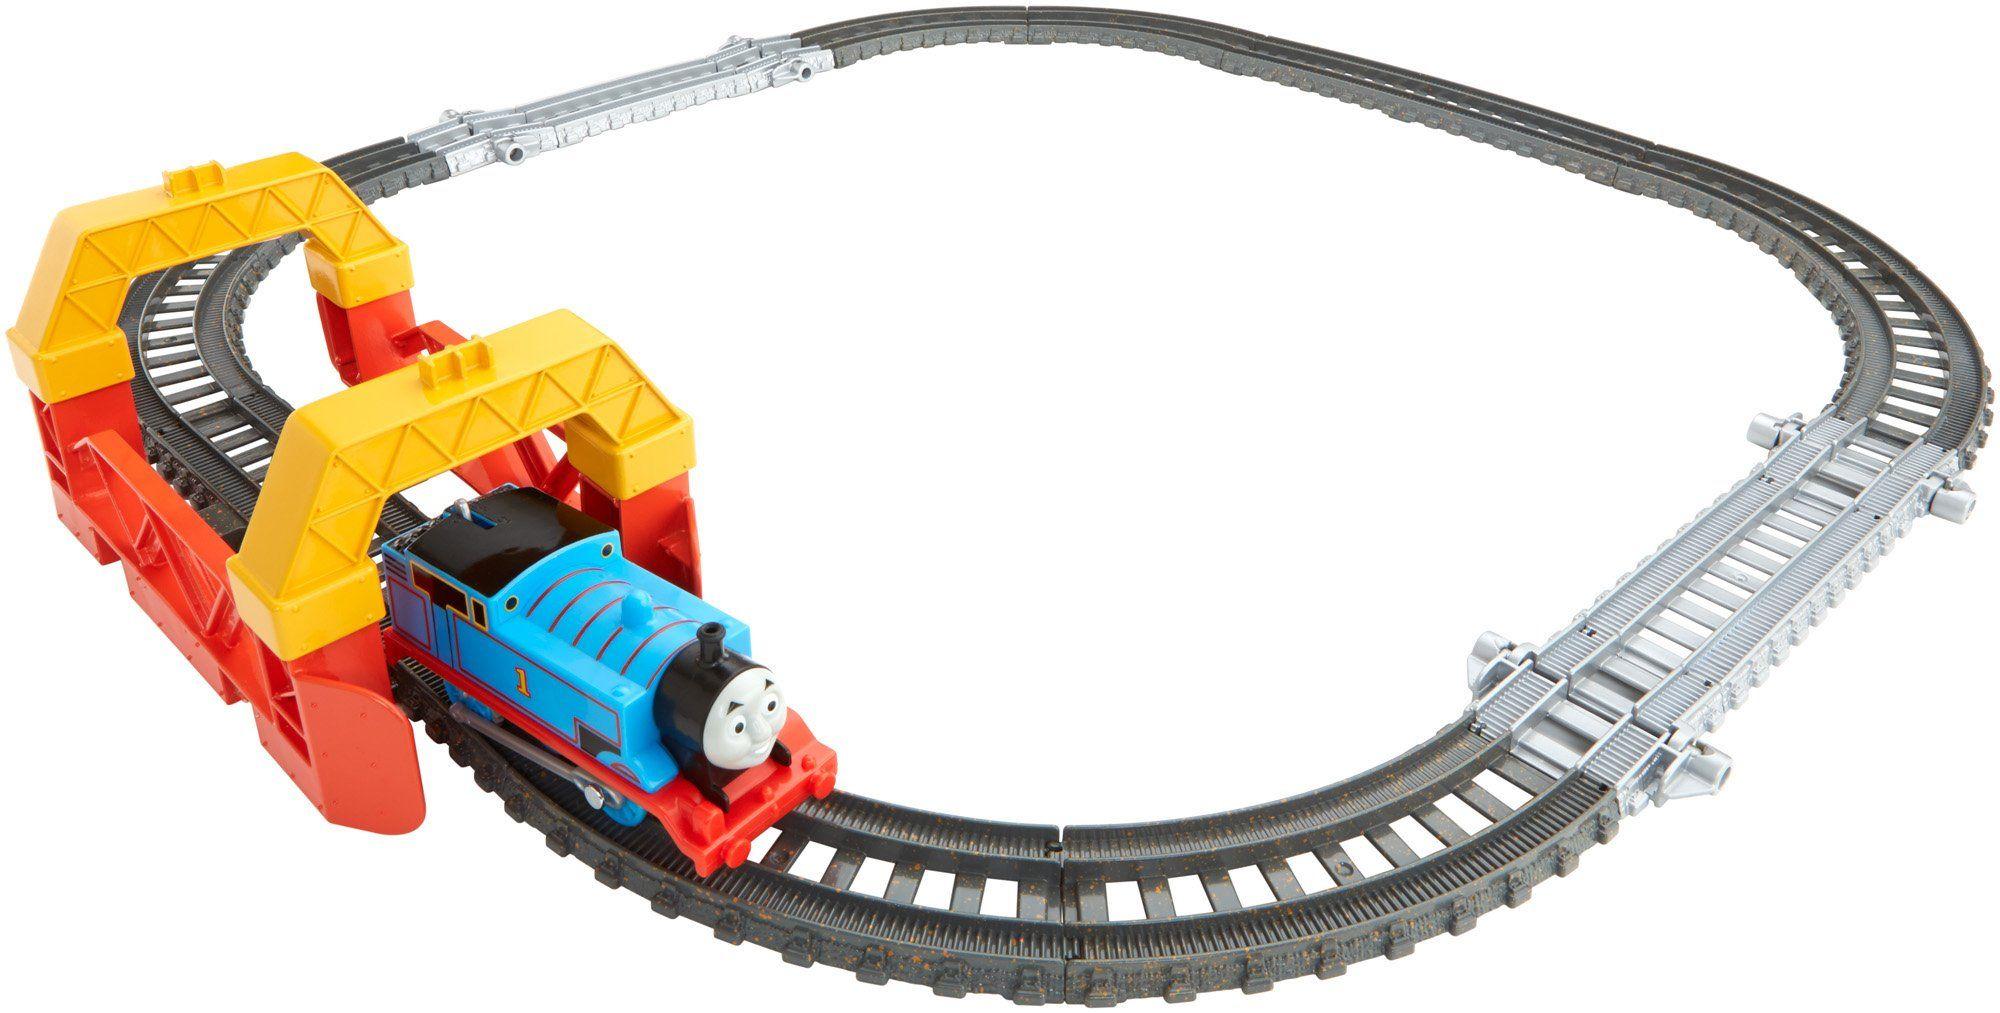 Fisher price thomas amp friends trackmaster treasure chase set new - Amazon Com Fisher Price Thomas The Train Trackmaster 2 In